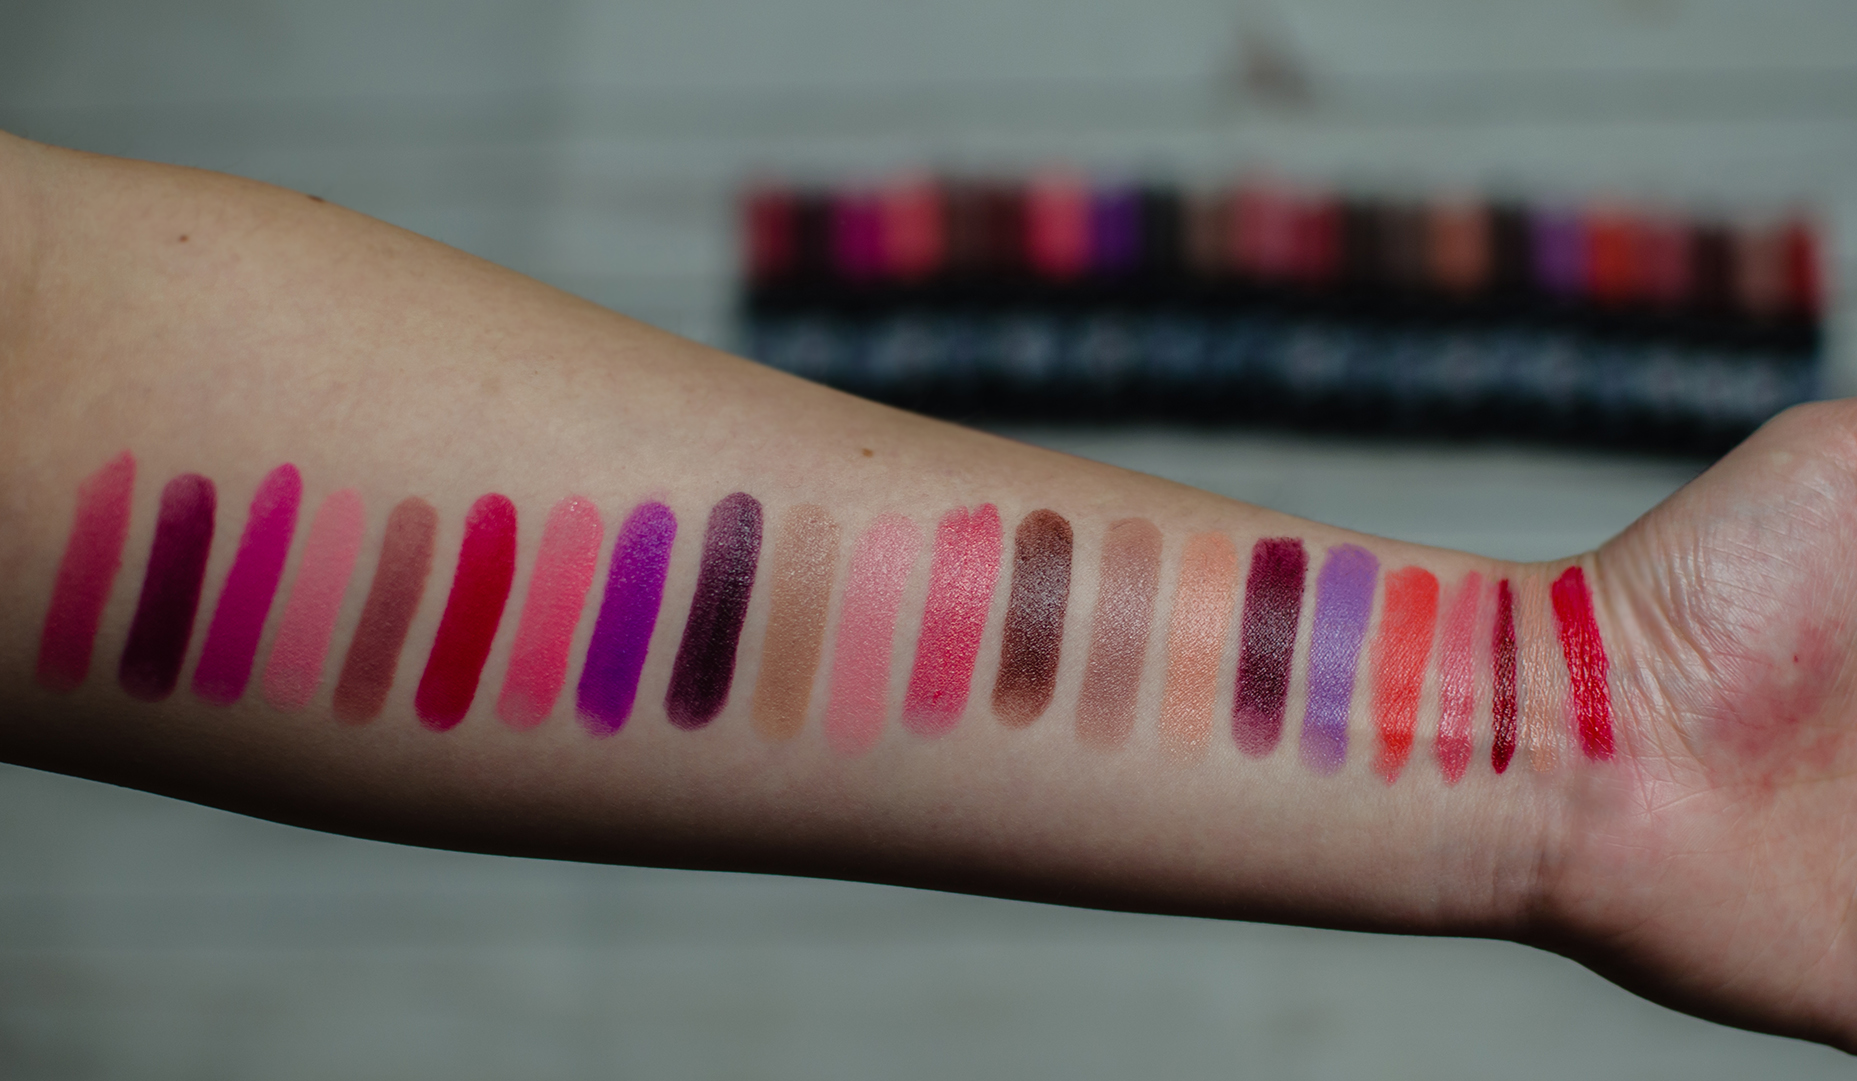 nyx turnt up! swatches